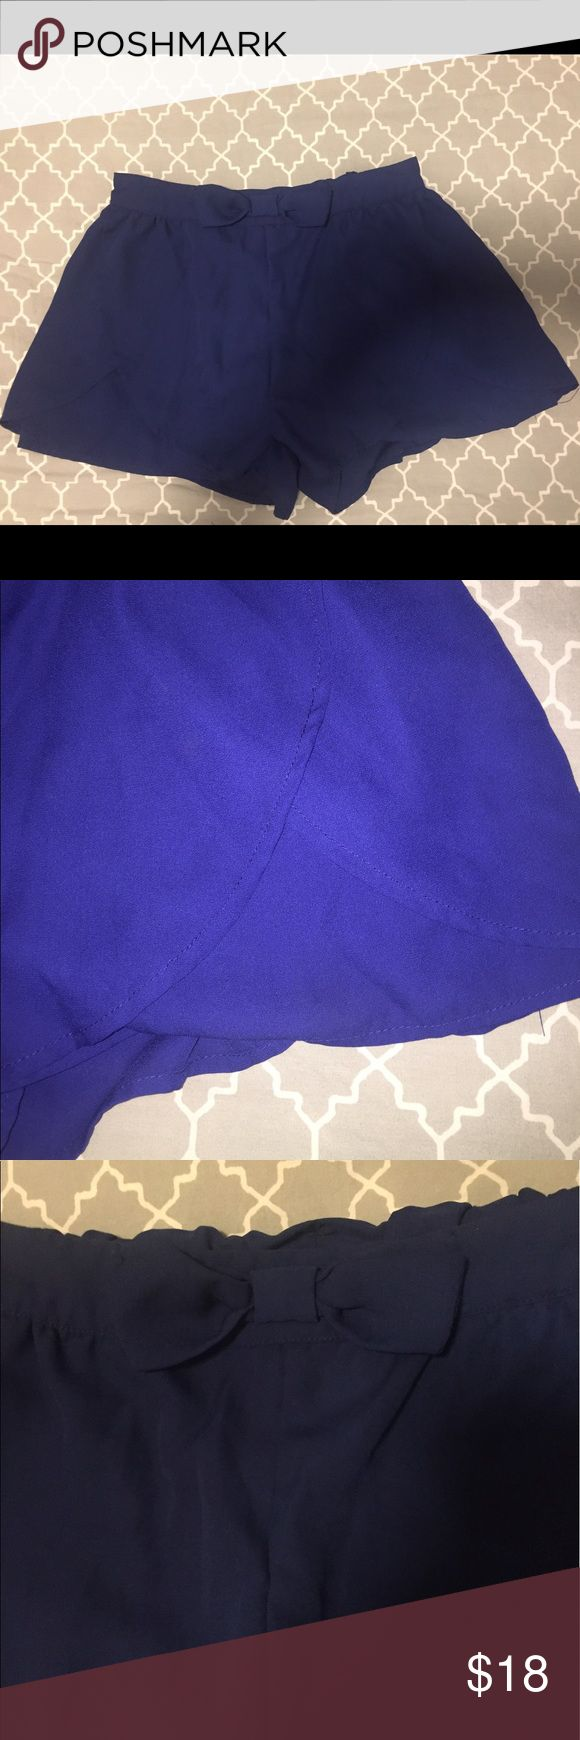 Royal blue shorts These shorts are a perfect royal blue with a bow detail on the waistband. They also are really stretchy/loose fitting which make them very comfortable for the summer. Francesca's Collections Shorts